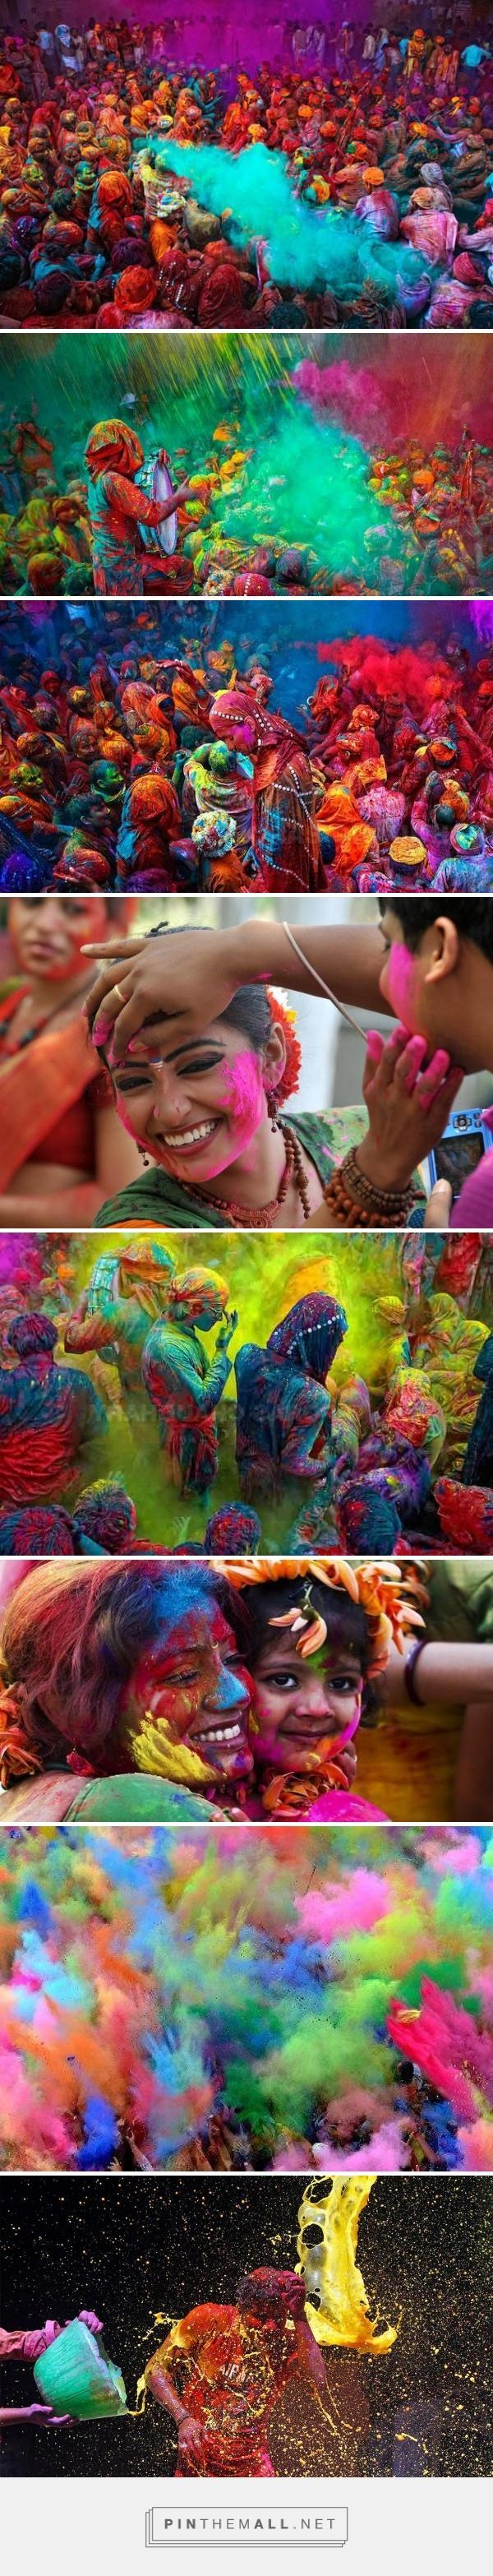 Holi, India Also known as the festival of colors and love, this vivid spring festival brings all people together. The social barriers break completely, friend or stranger, rich or poor, men or women, children or elders, Hindu or not, all people come toget